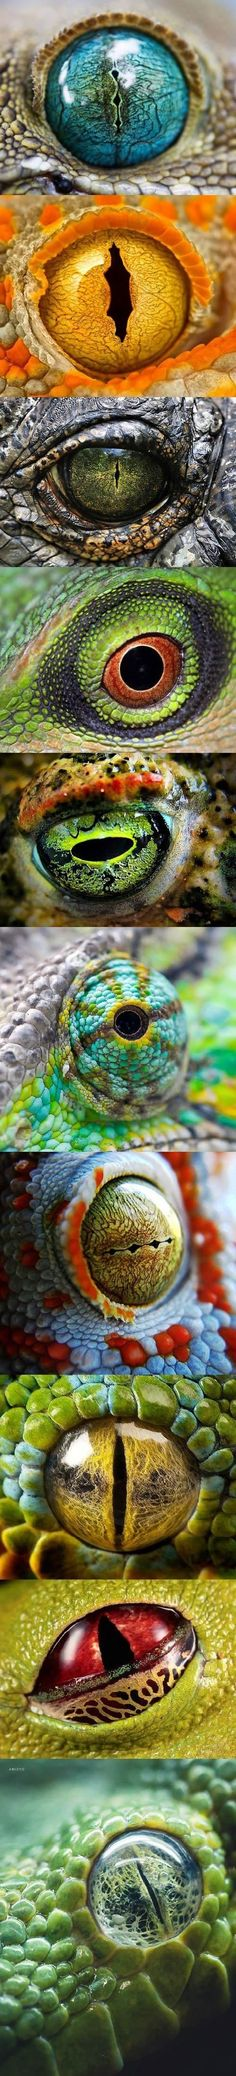 Reptile eyes. Amazing!: